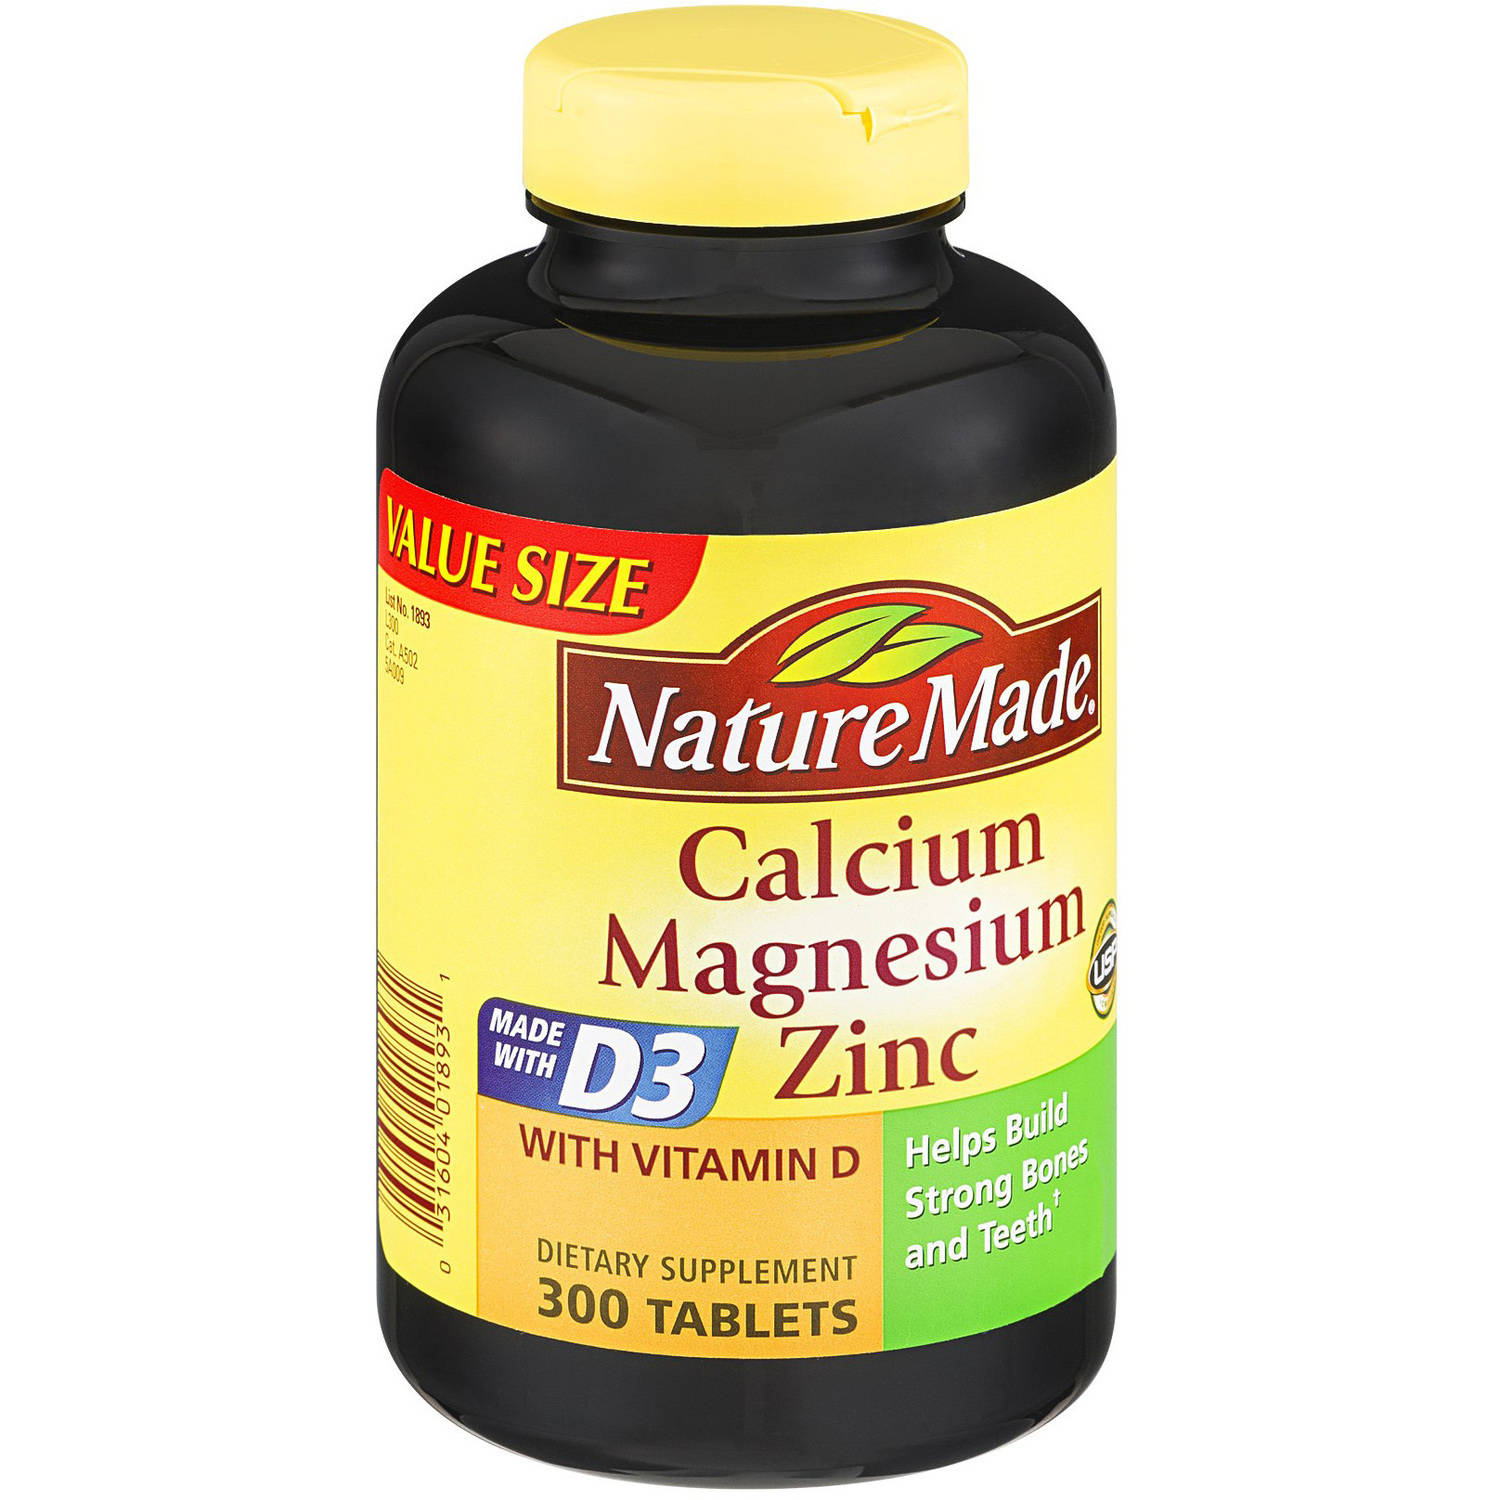 Nature Made Cal Mag Zinc, 300 CT (Pack of 3)